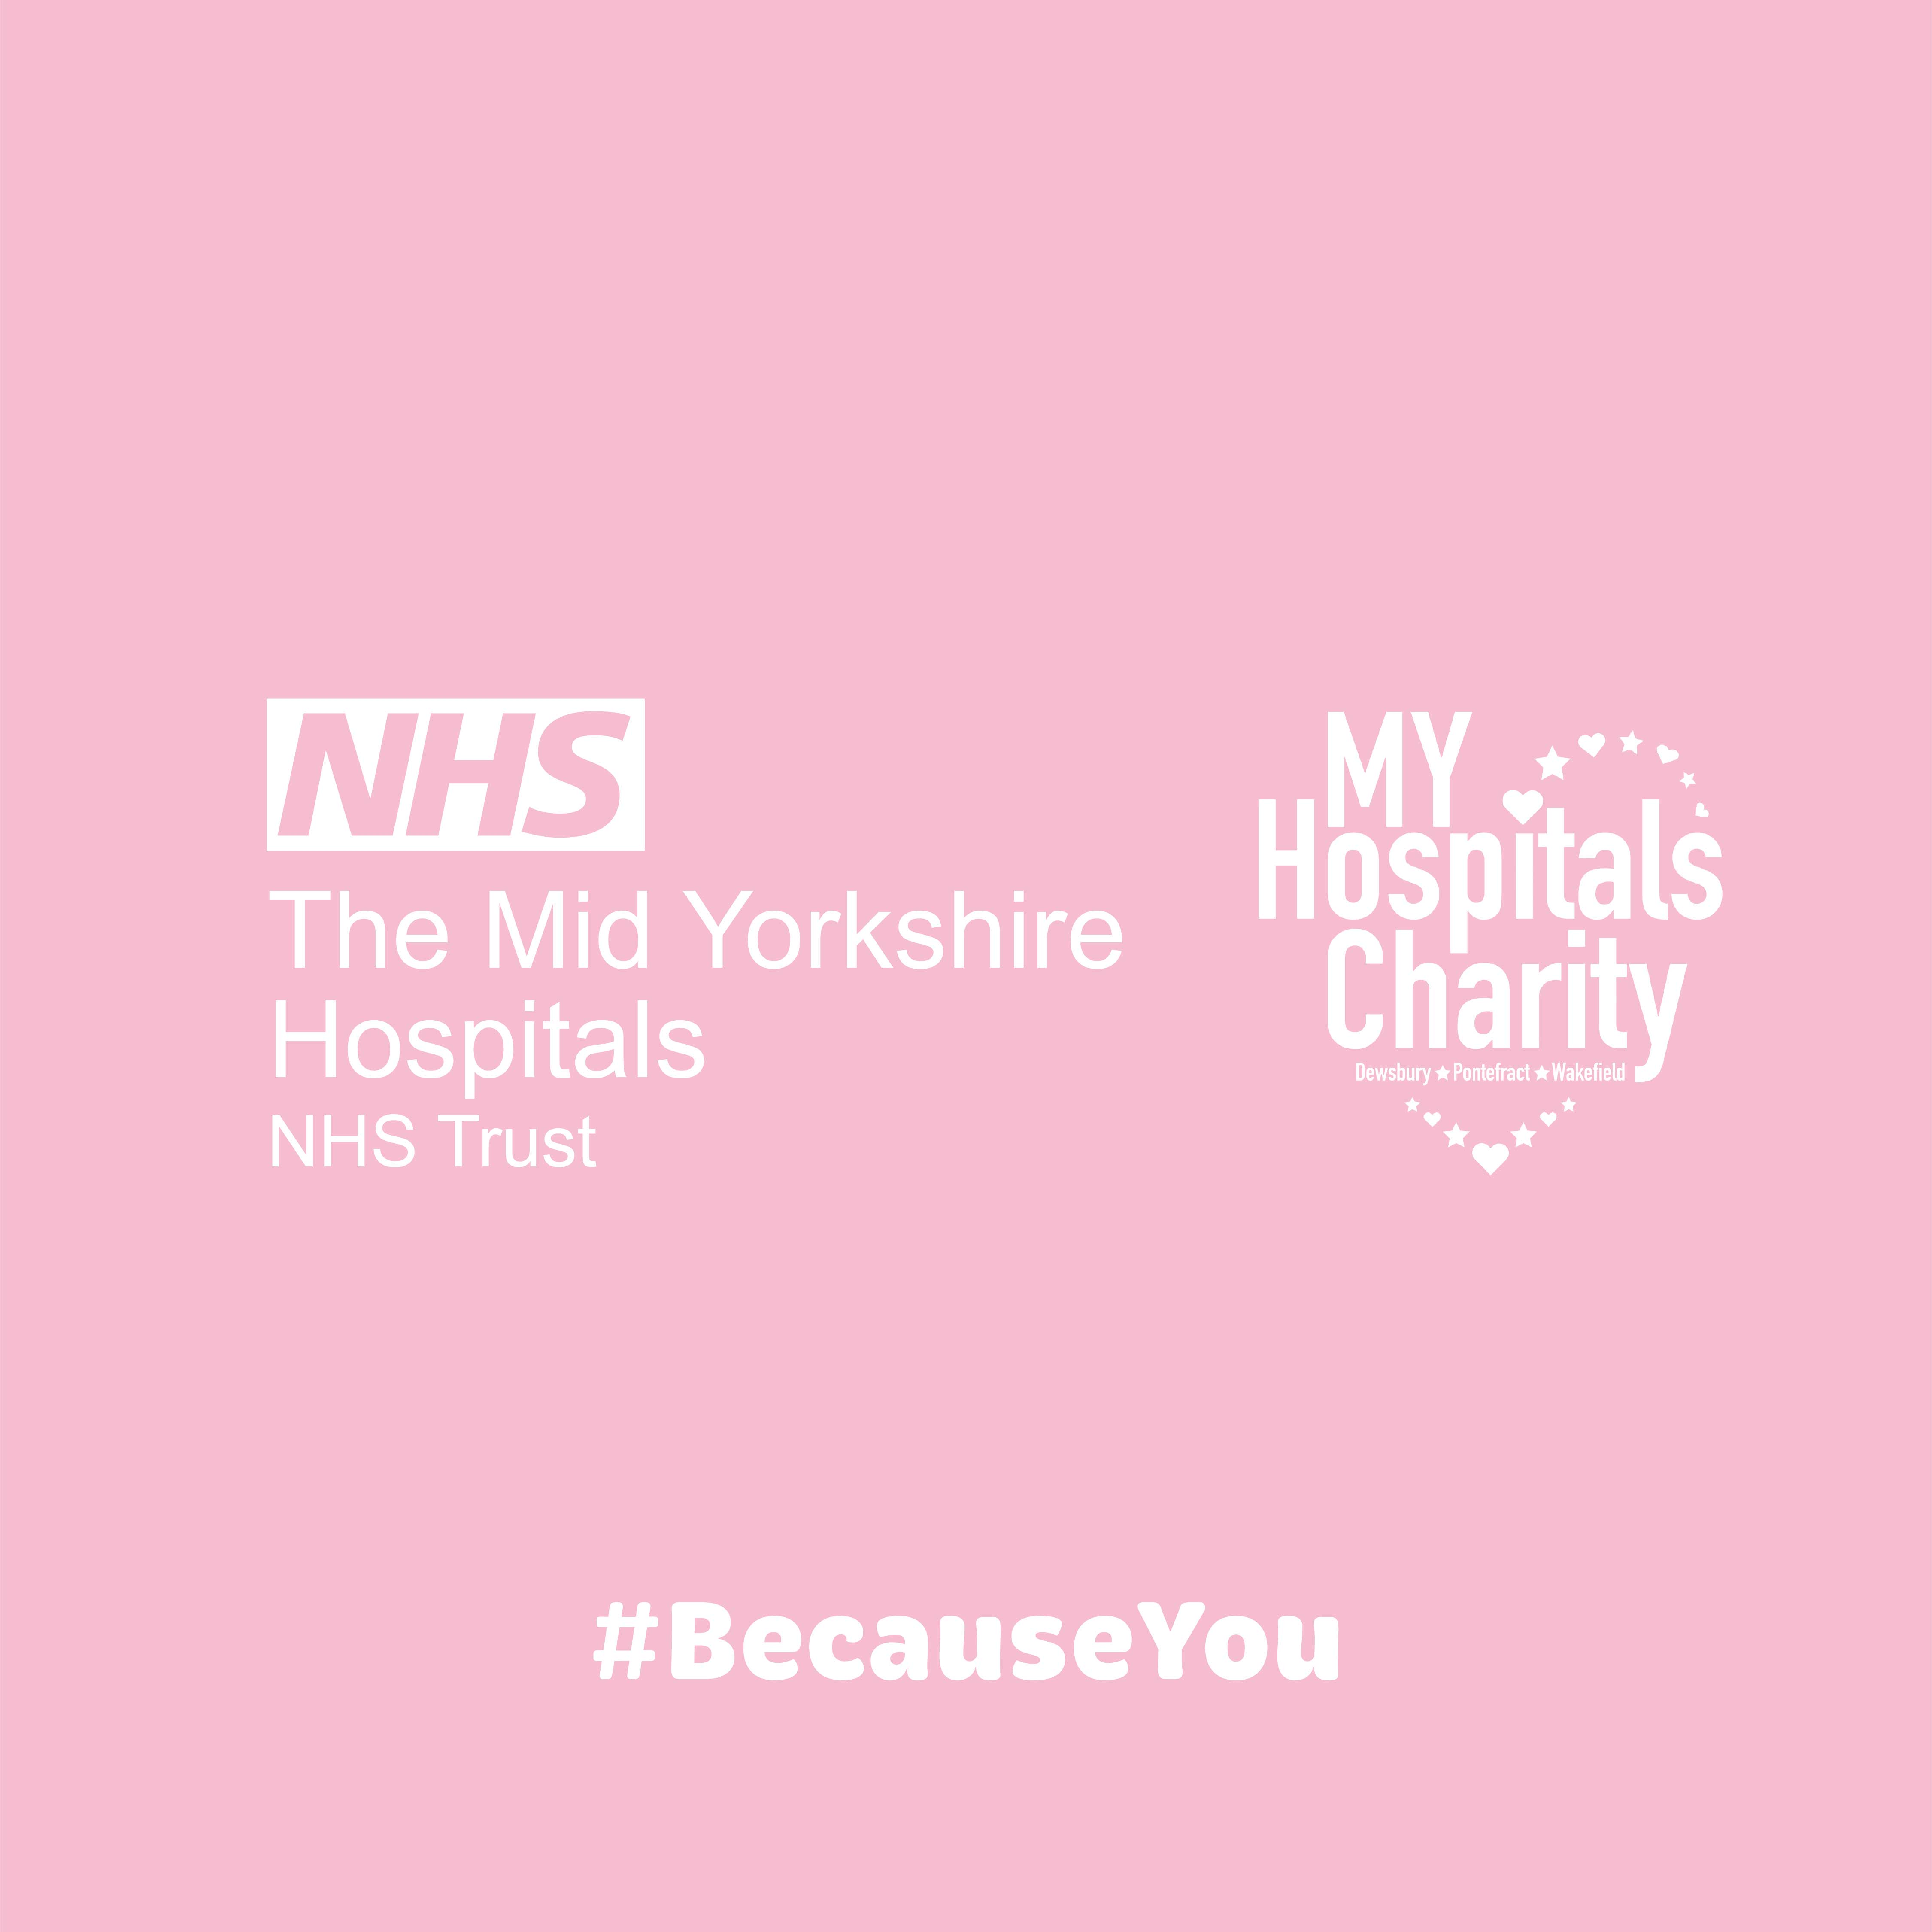 The Mid Yorkshire Hospitals